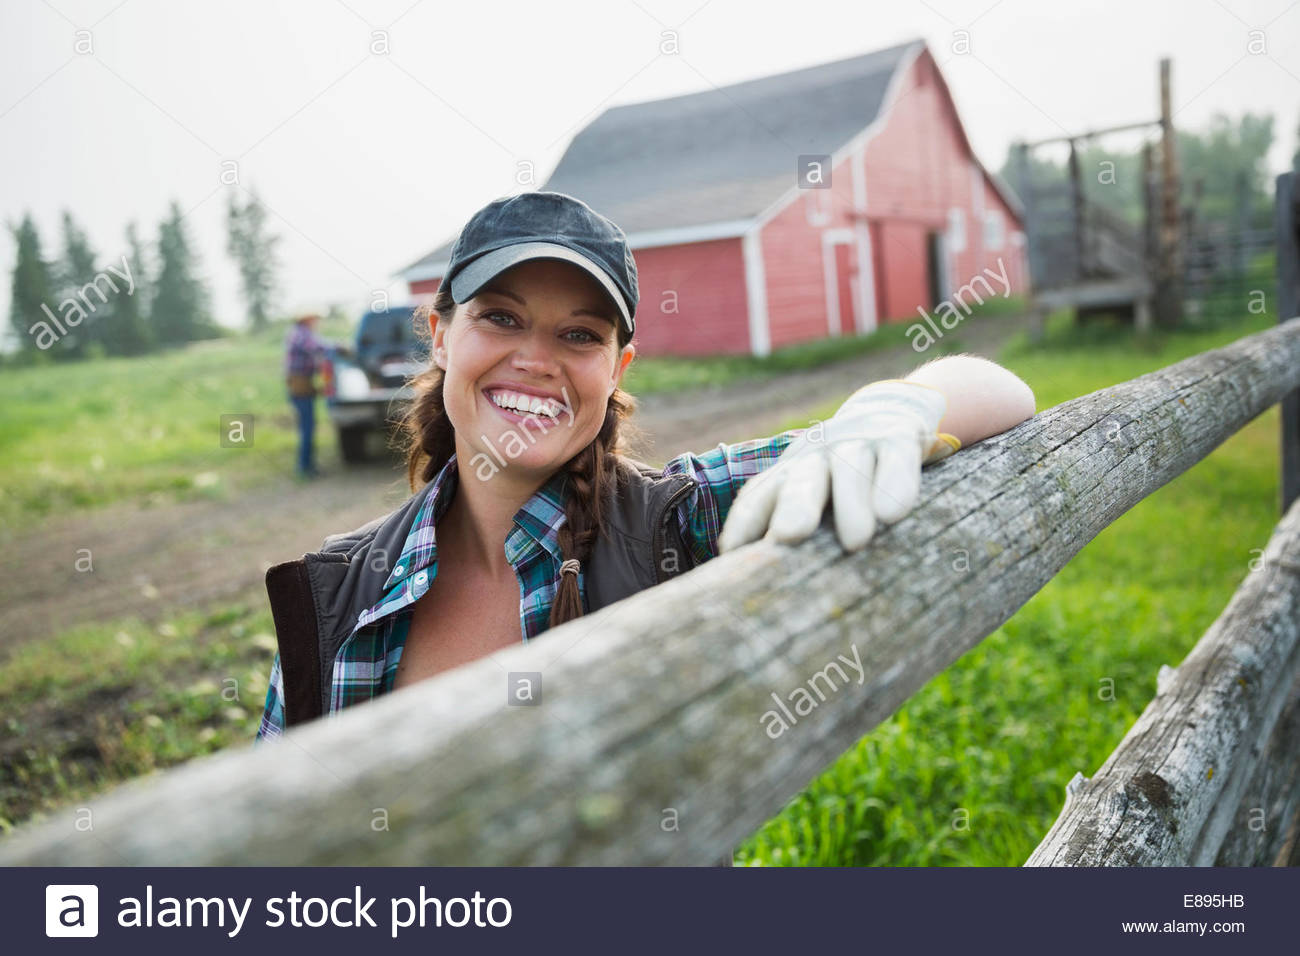 Portrait of smiling rancher leaning on fence post - Stock Image